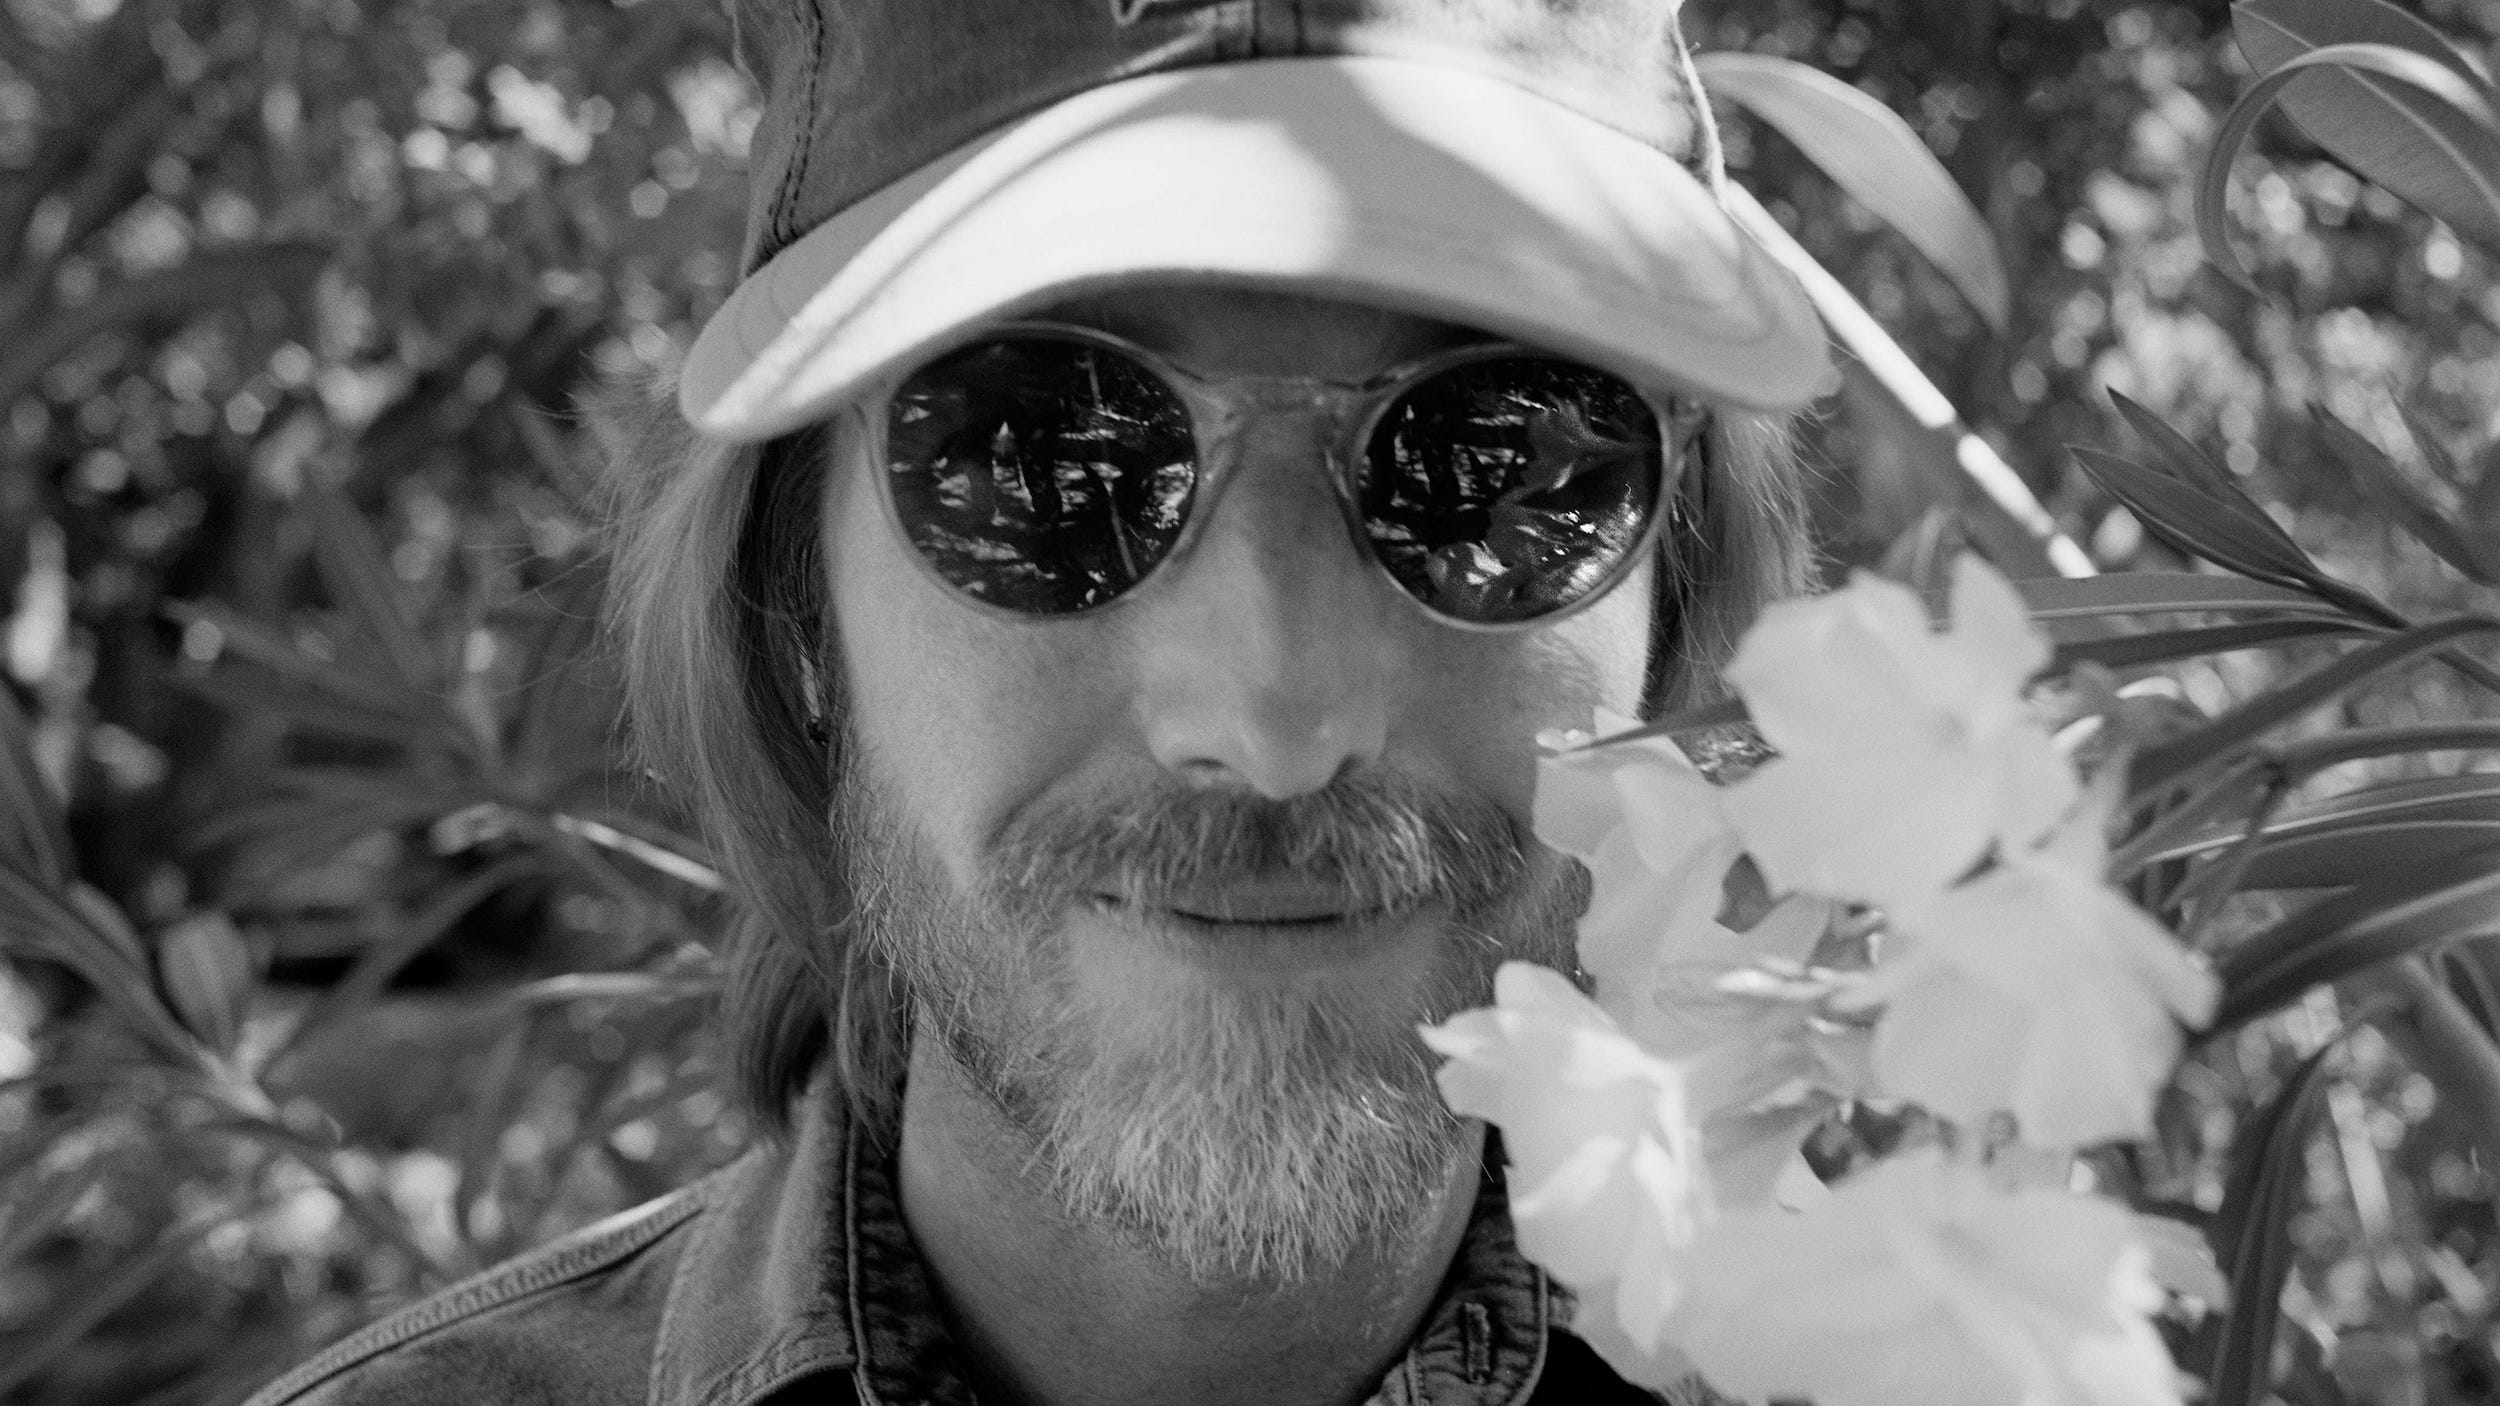 SXSW 2021: 'Tom Petty, Somewhere You Feel Free' is a Must-See Rock Doc